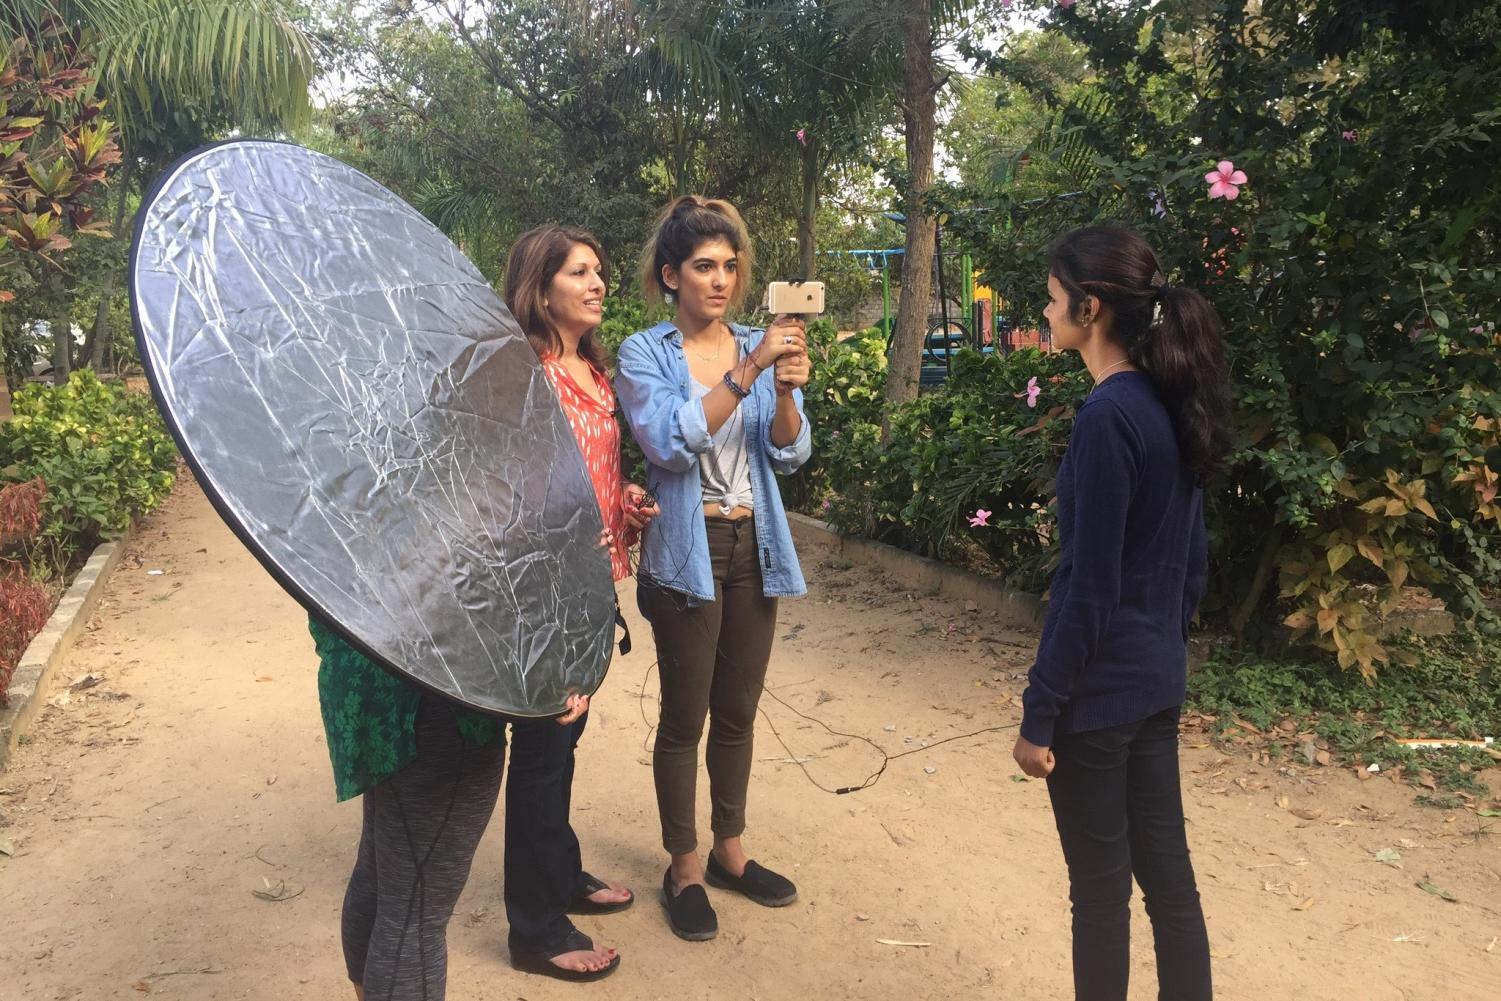 Monika Samtani ('85) and her daughter Natasha interview a student at Sahasra Deepika, an all-girls non-profit school in Bangalore, India. Monika said working with the school inspired her and Natasha